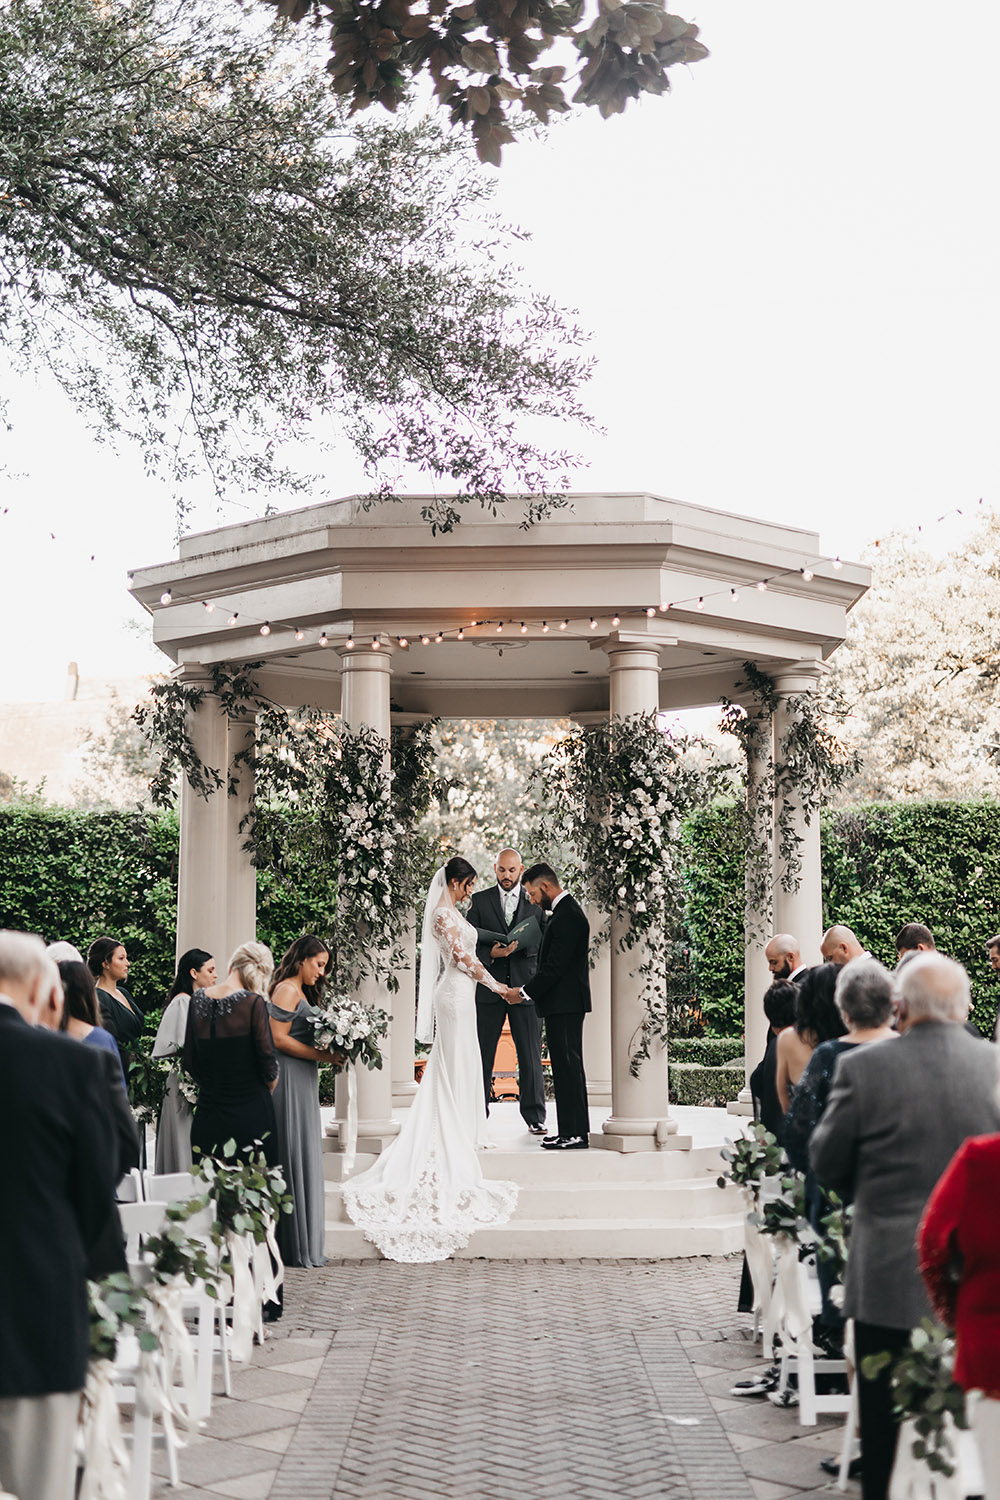 Kimberly and Carlo say their wedding vows in the gazebo at The Elms Mansion